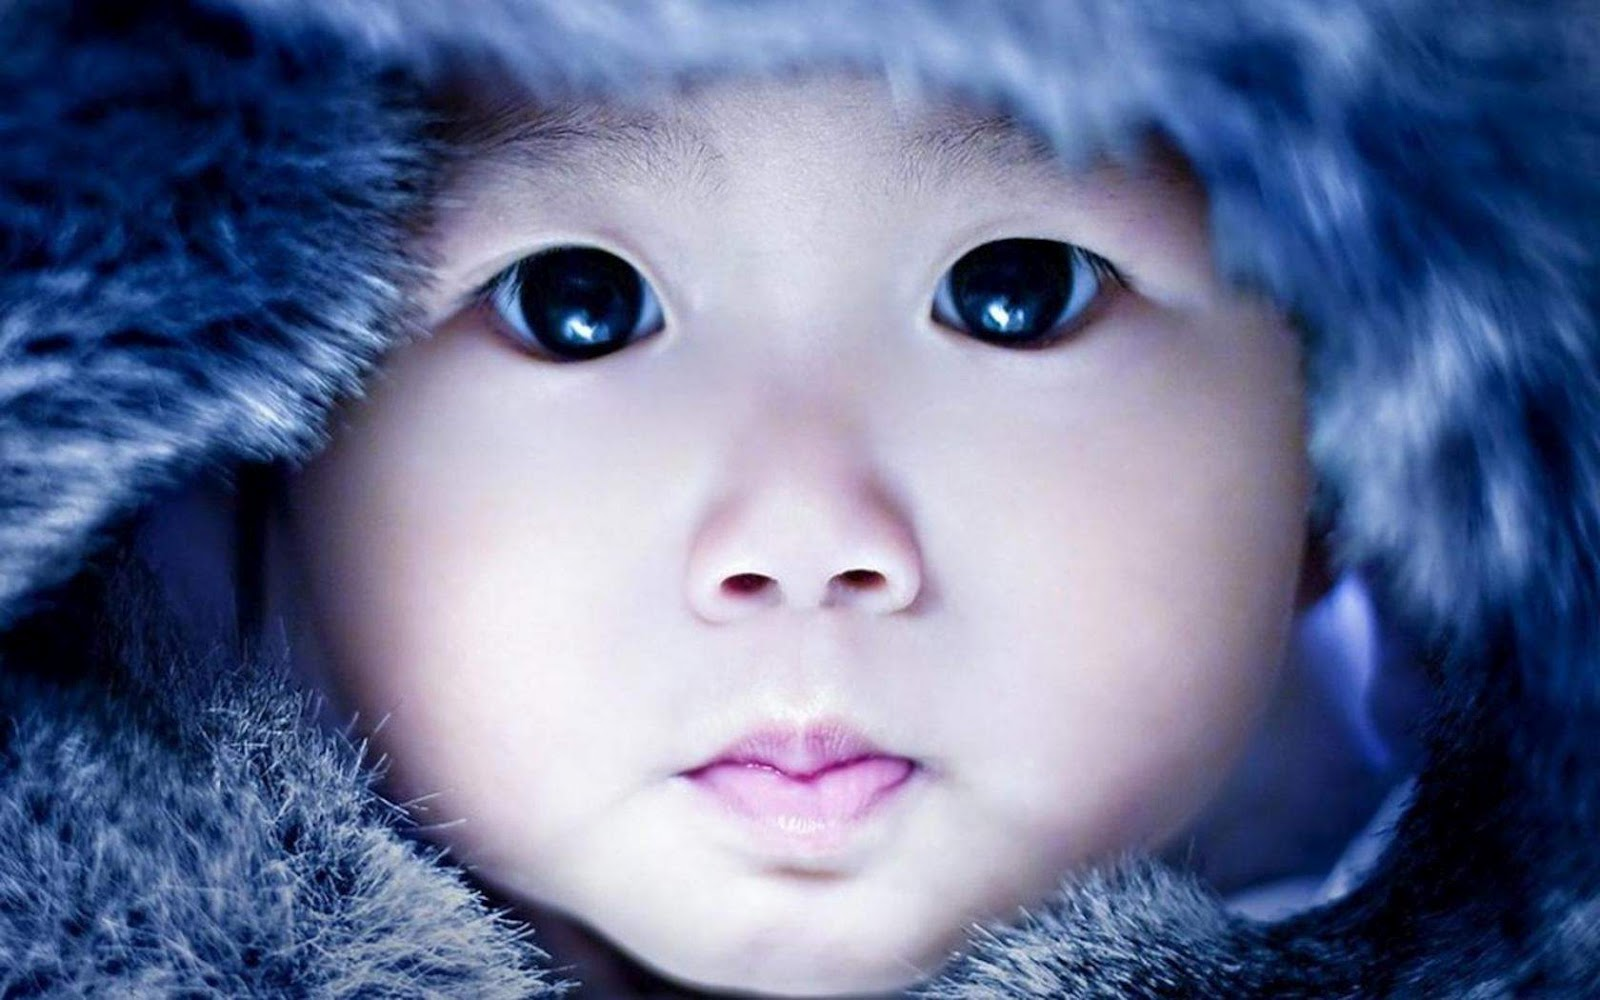 Love cute child Wallpaper : Wallpaper collection For Your computer and Mobile Phones: 20 Best collection of cute Baby Wallpapers